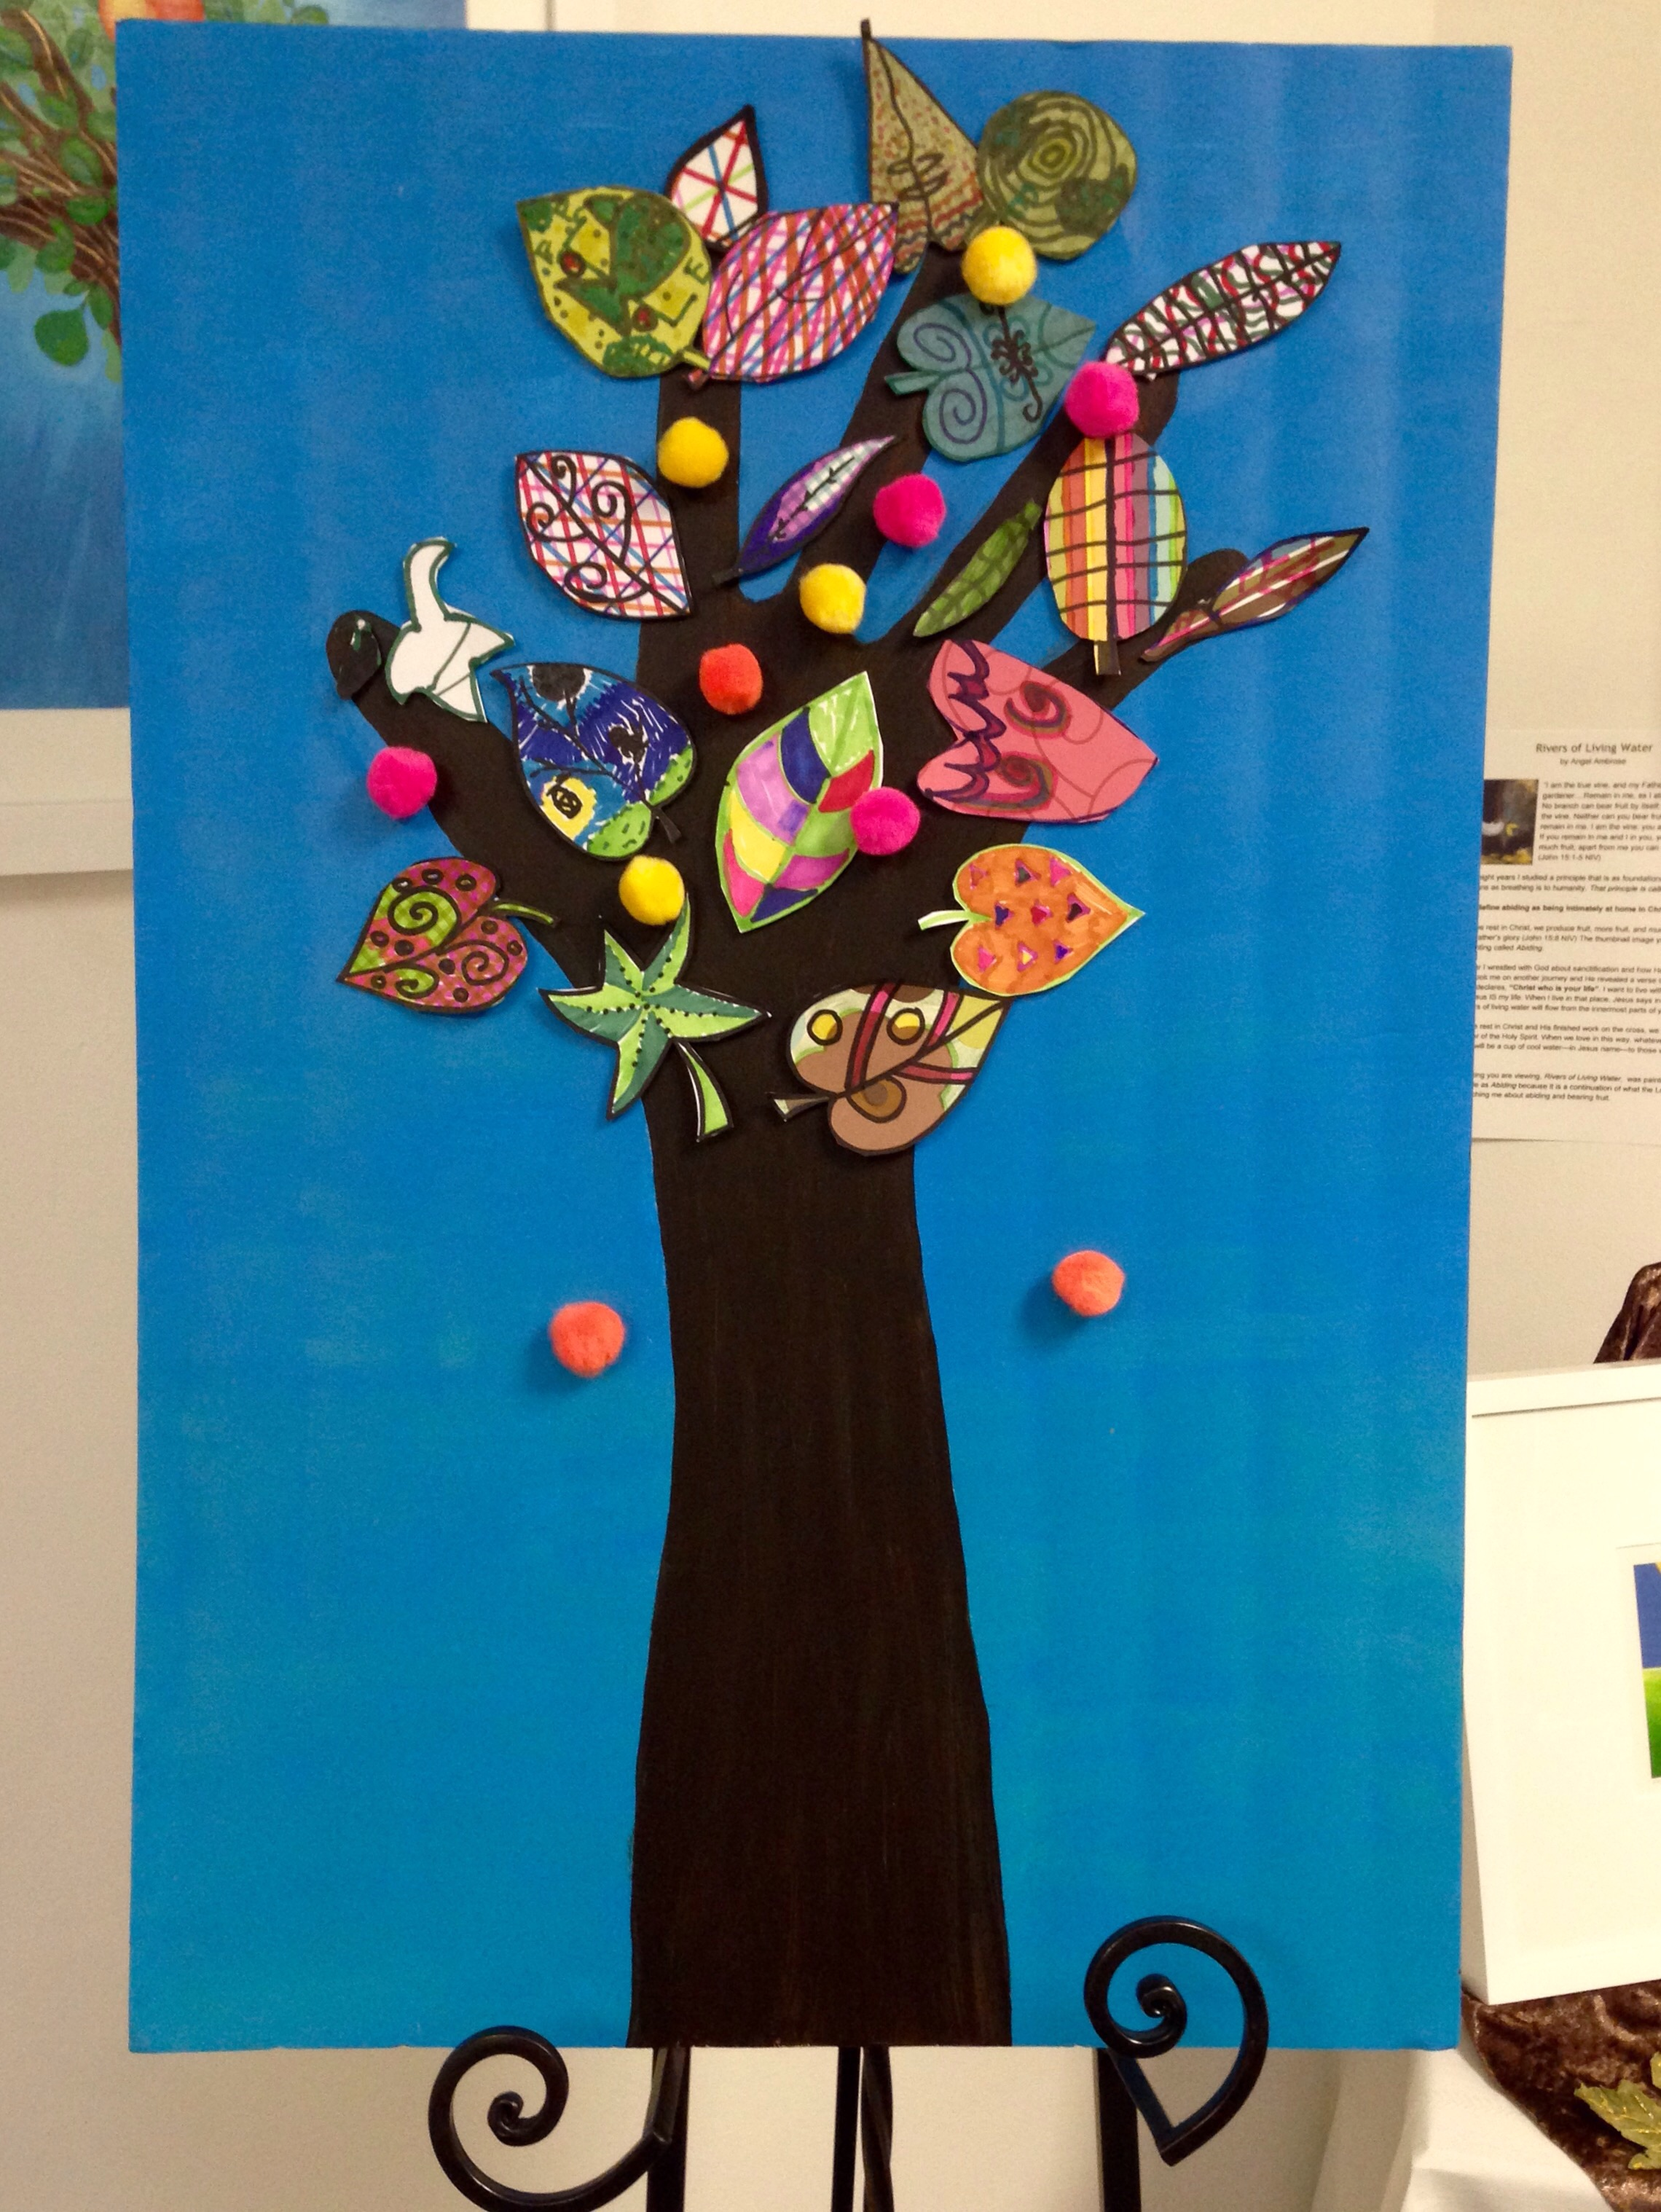 The finished Community Tree Project. Awesome!